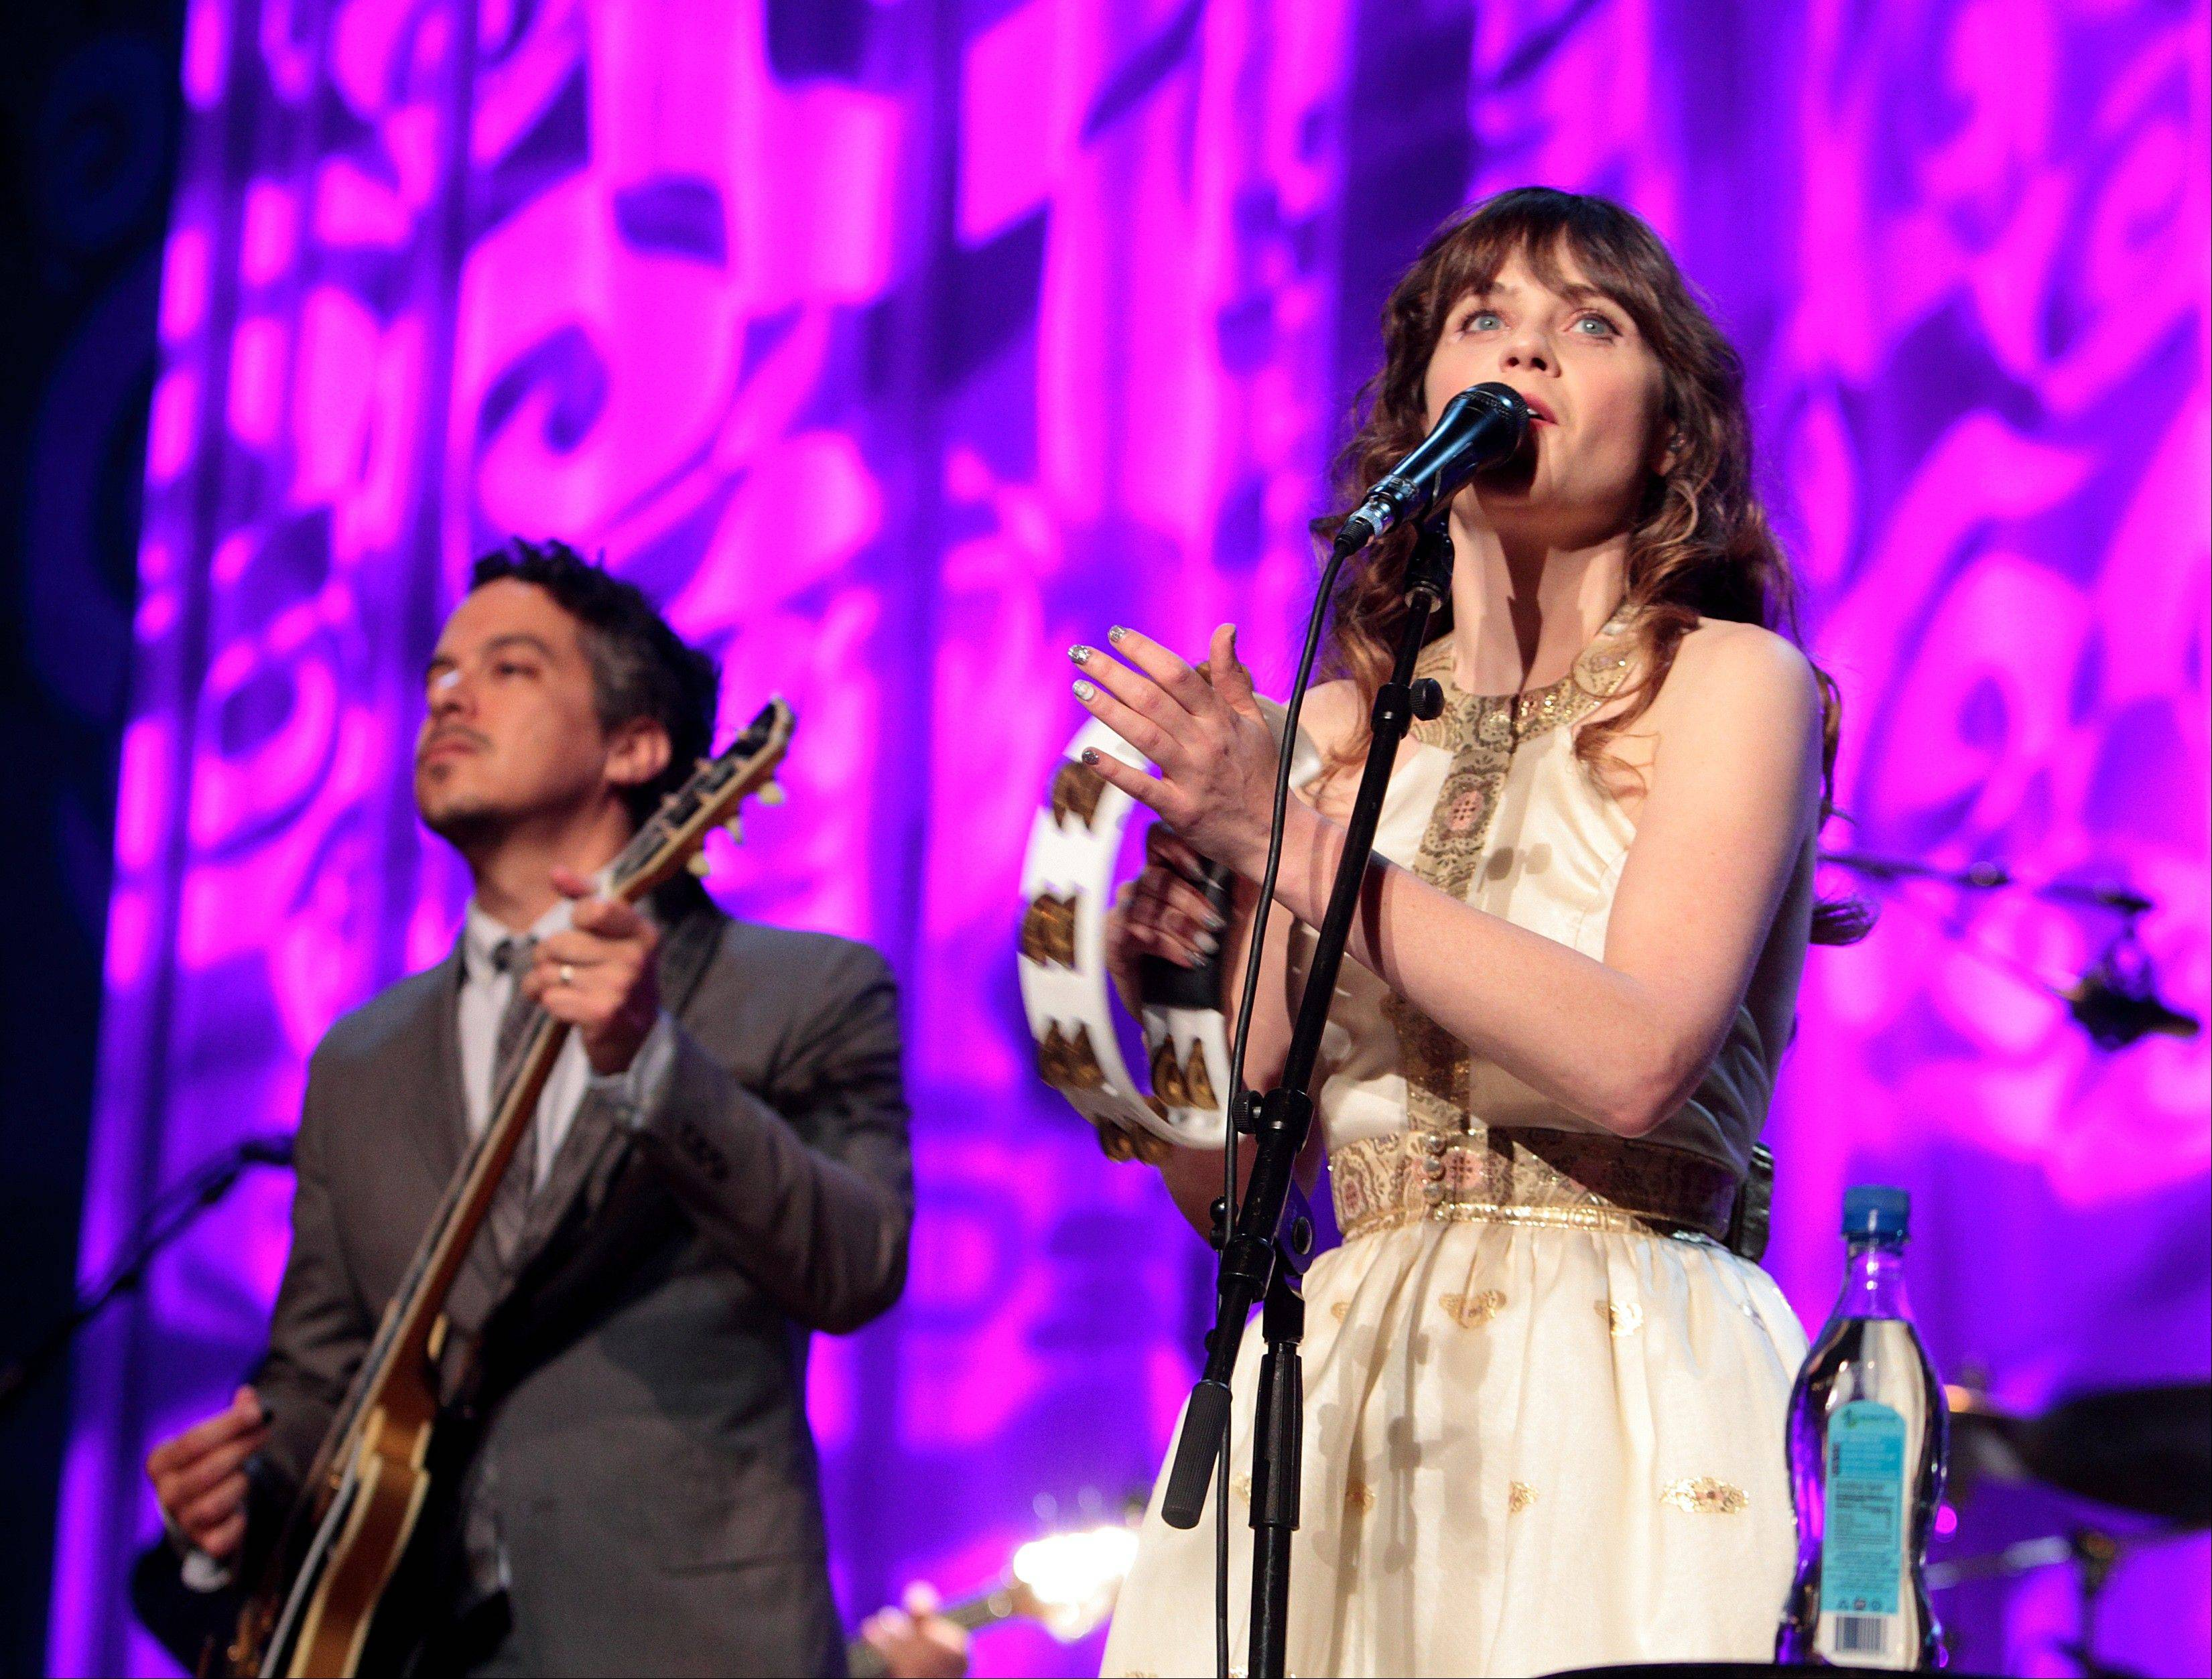 Indie rock band She & Him with Zooey Deschanel and M. Ward performs at the Mann Center in Philadelphia.